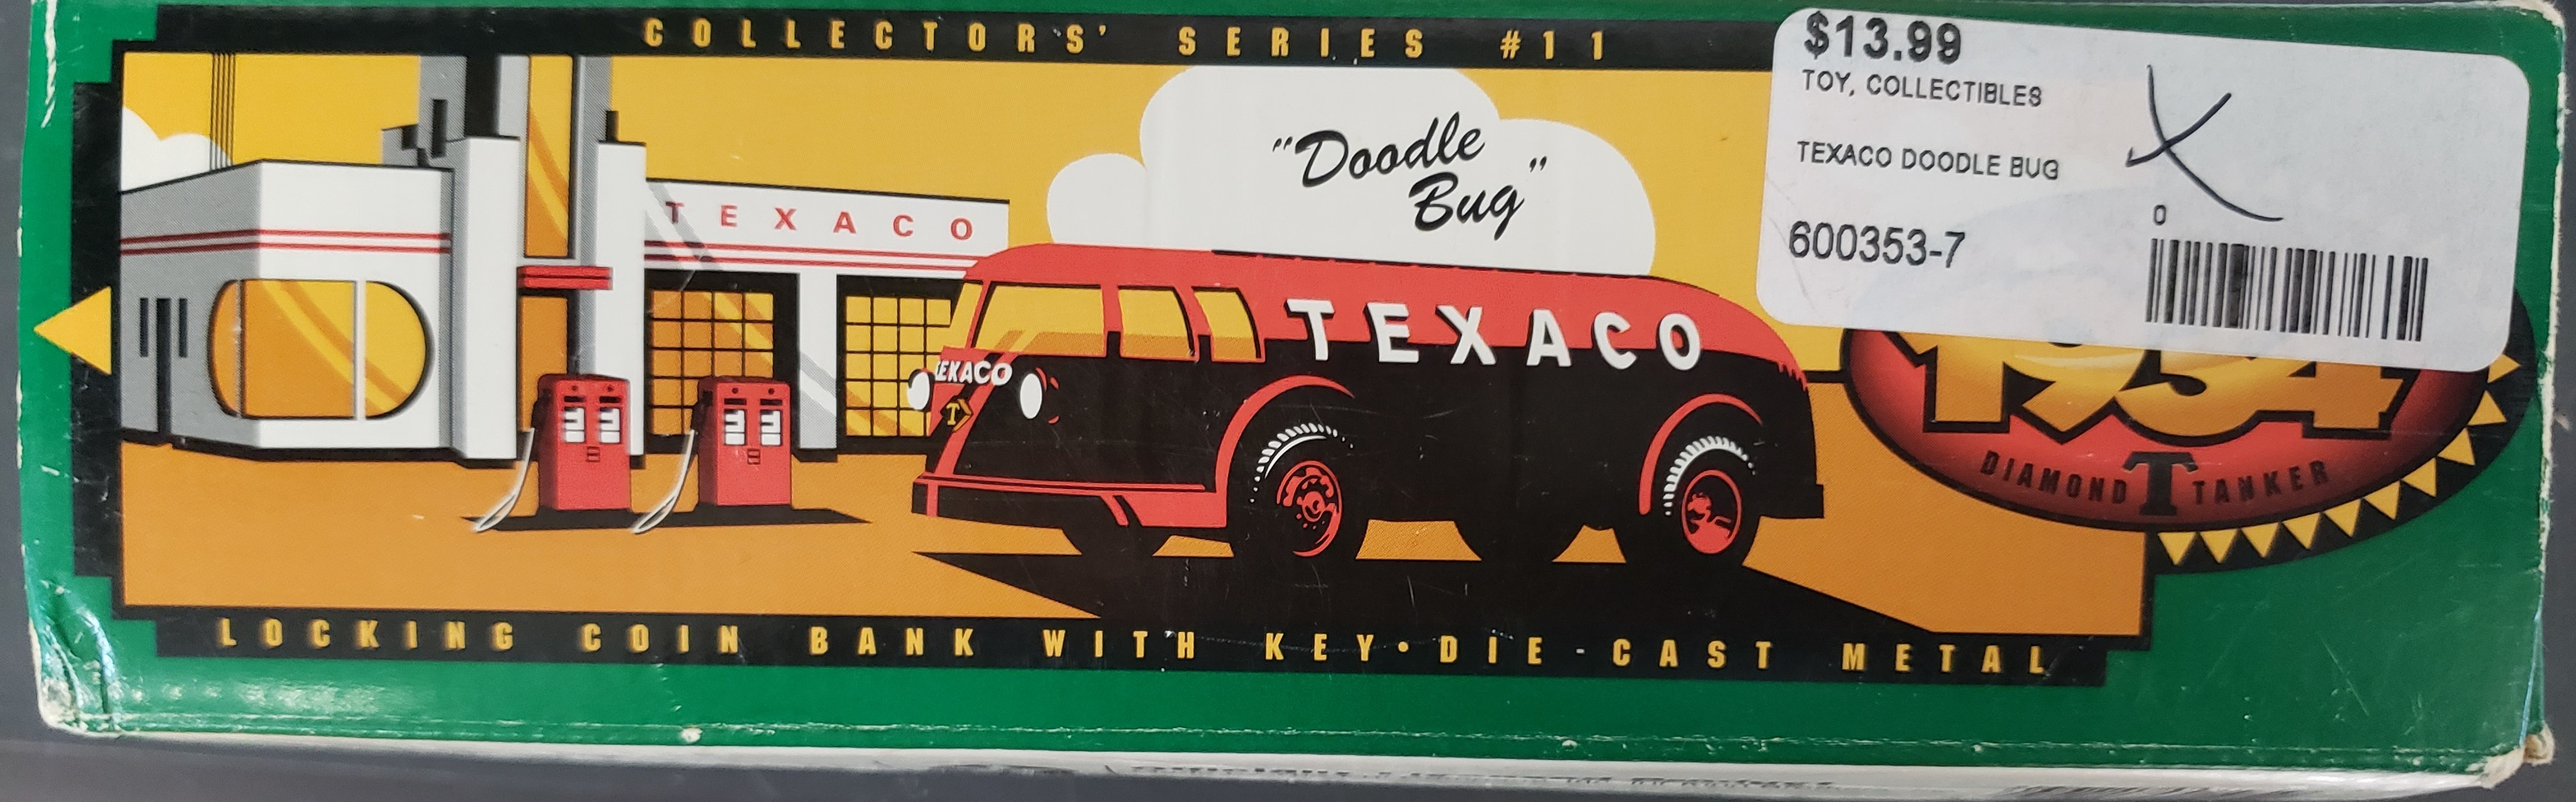 TEXACO DOODLE BUG - COLLECTOR'S SERIES - LOCKING COIN BANK